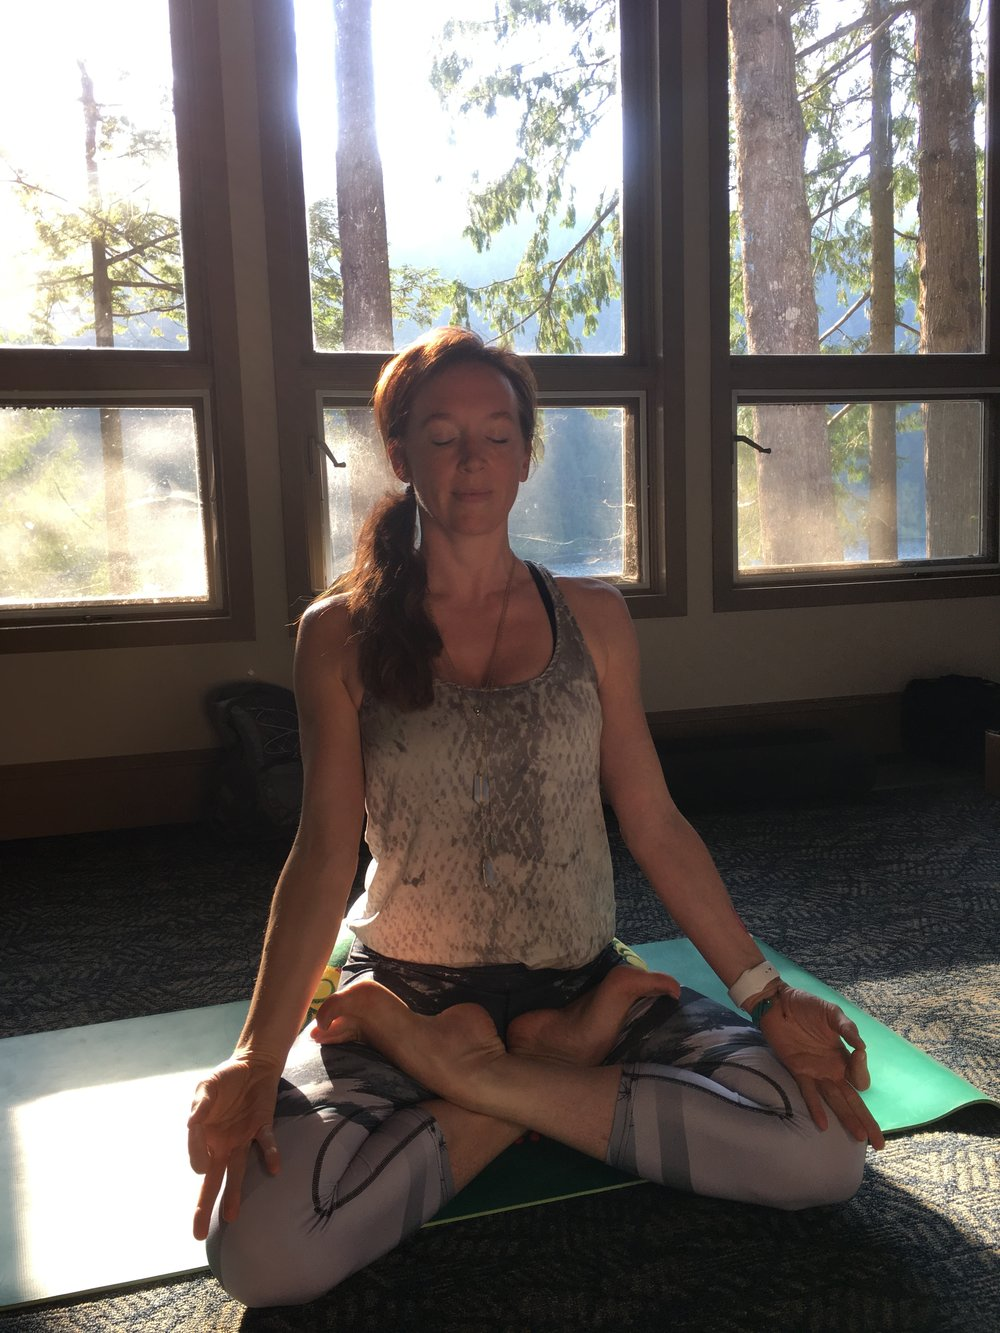 Me meditating in the forest yoga room.